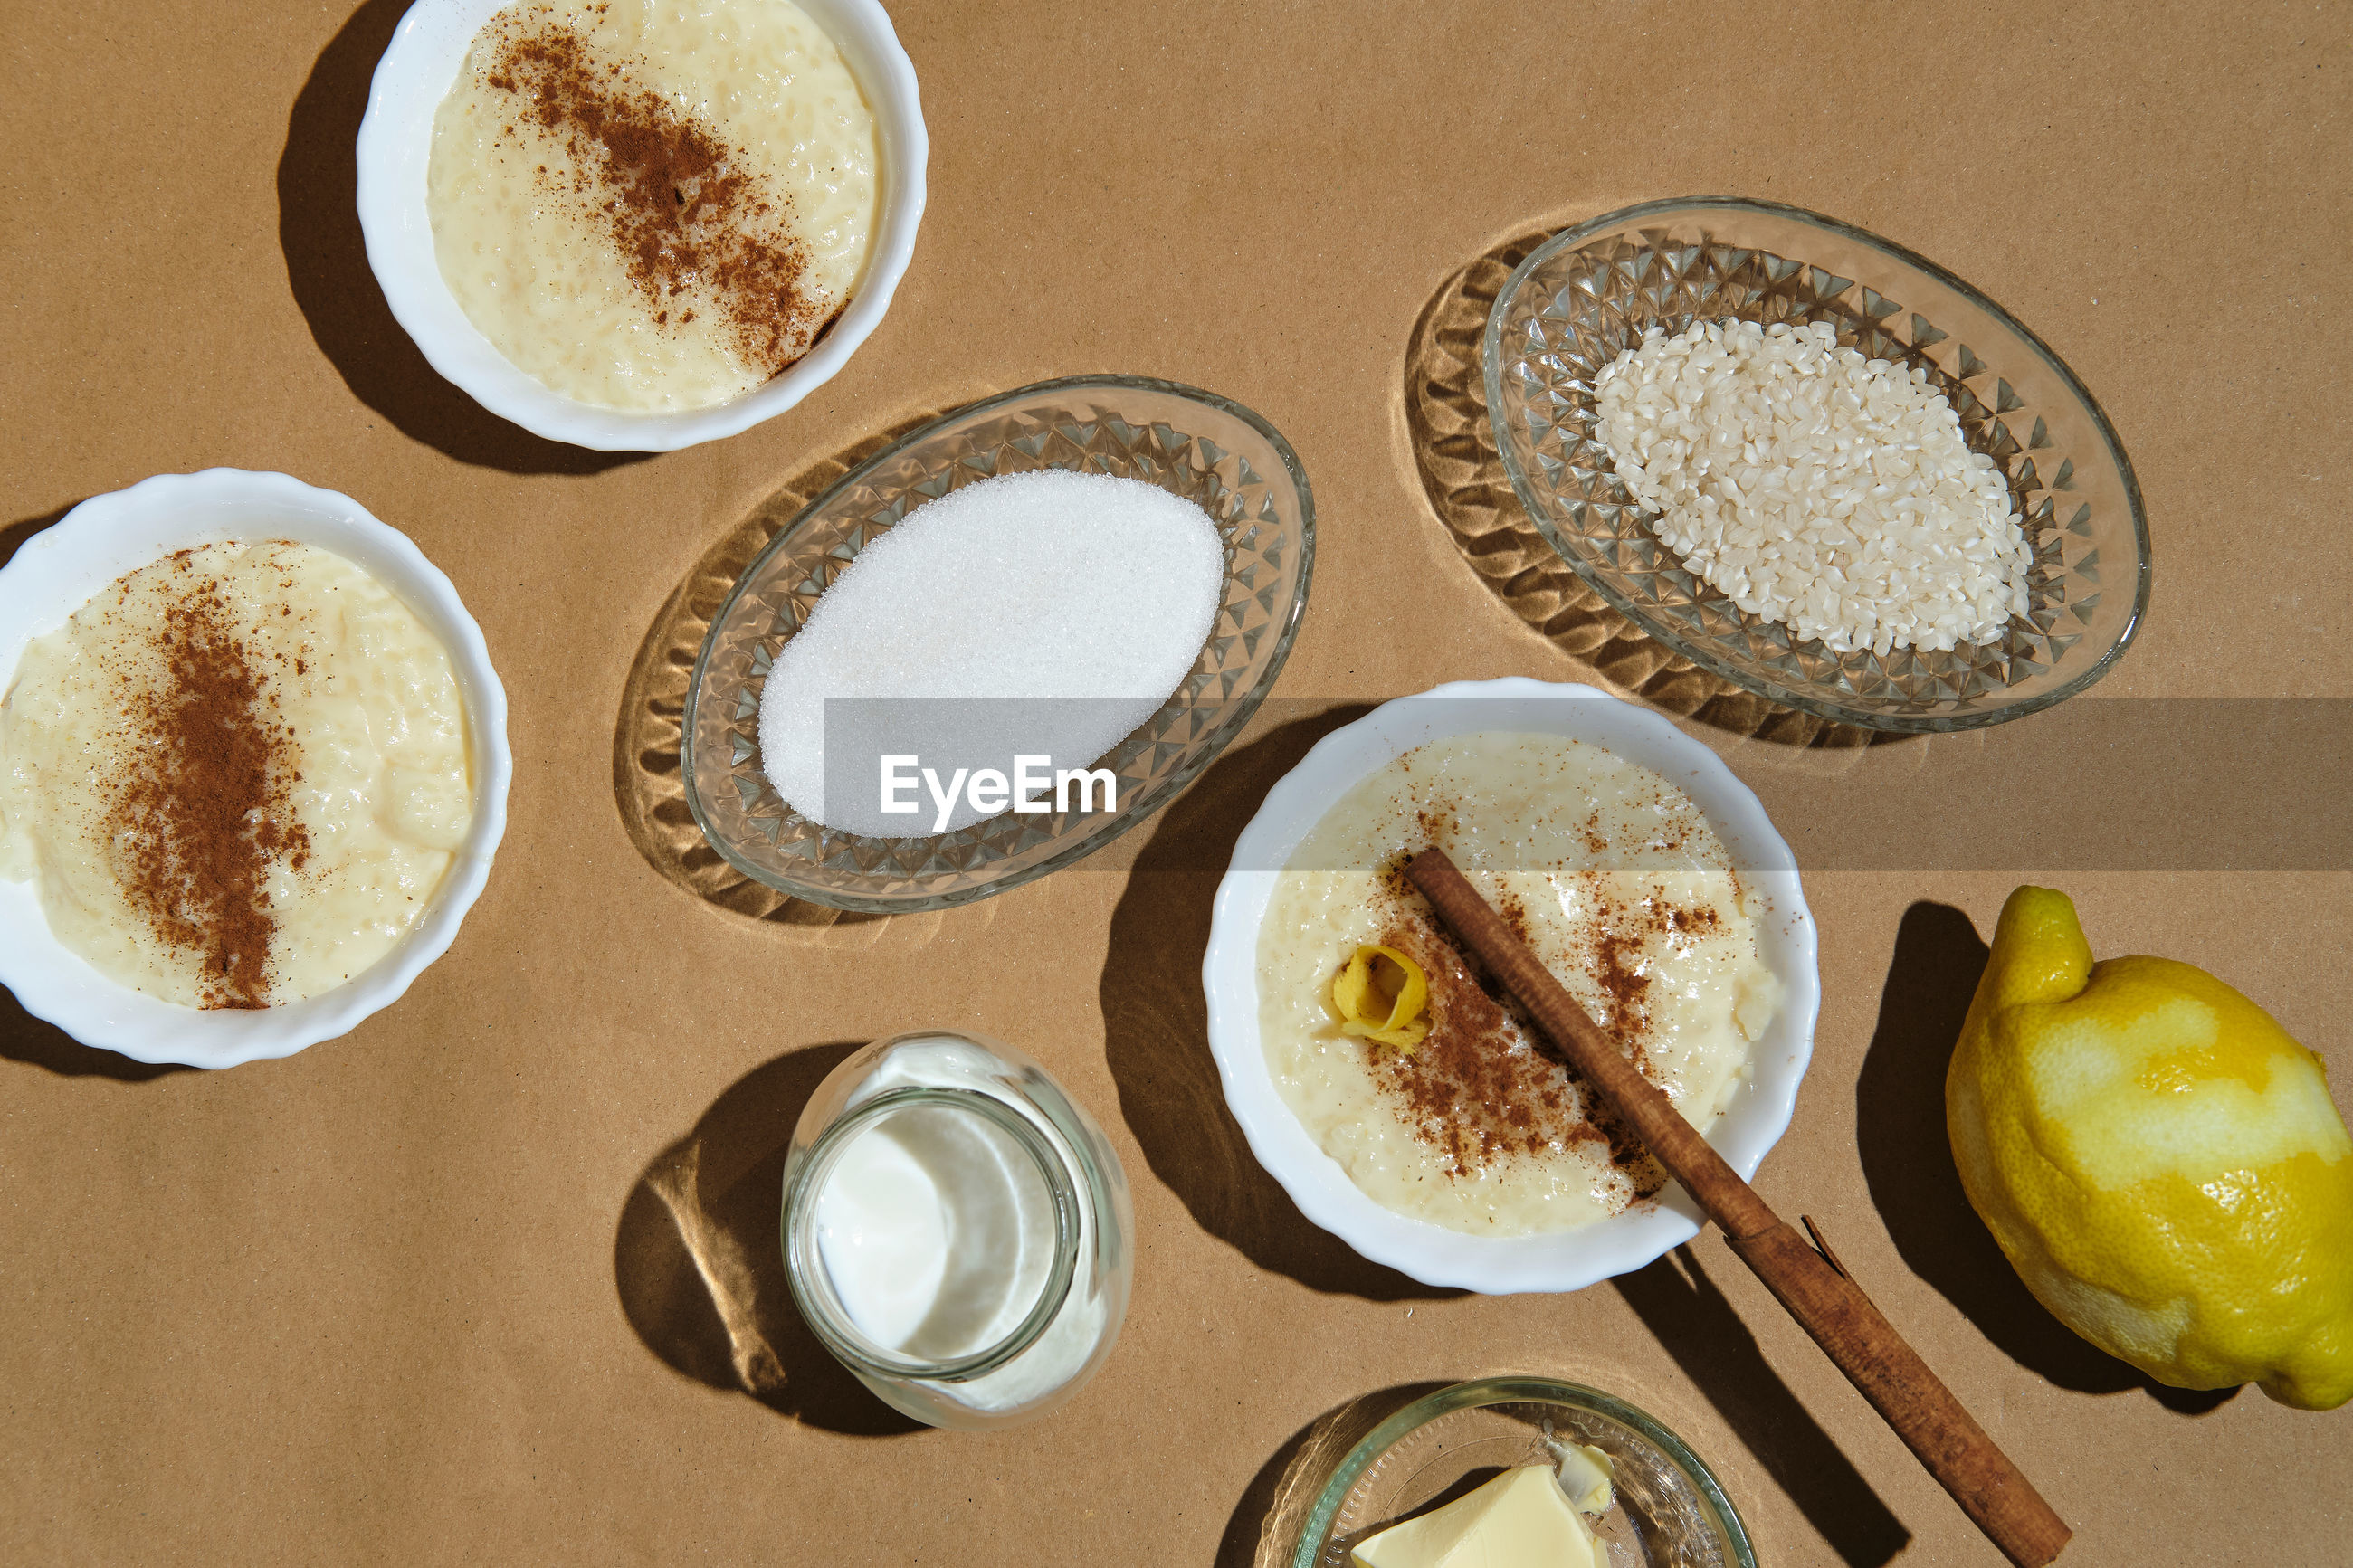 HIGH ANGLE VIEW OF COFFEE IN PLATE ON TABLE